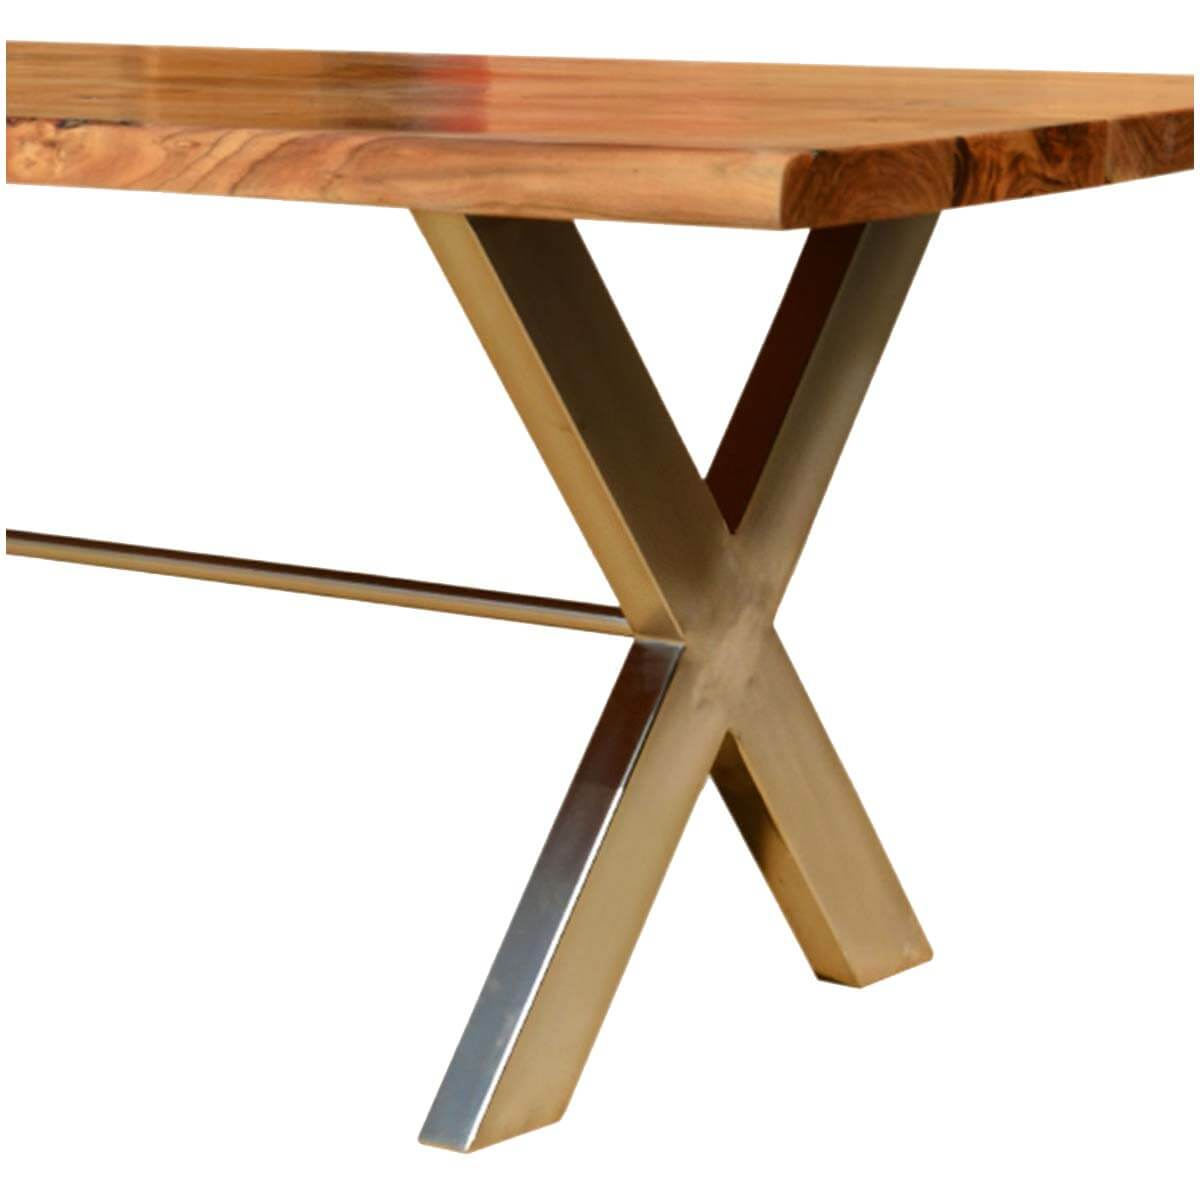 Industrial Cross Legs Solid Wood Live Edge Dining Table : 56073 from sierralivingconcepts.com size 1200 x 1200 jpeg 71kB